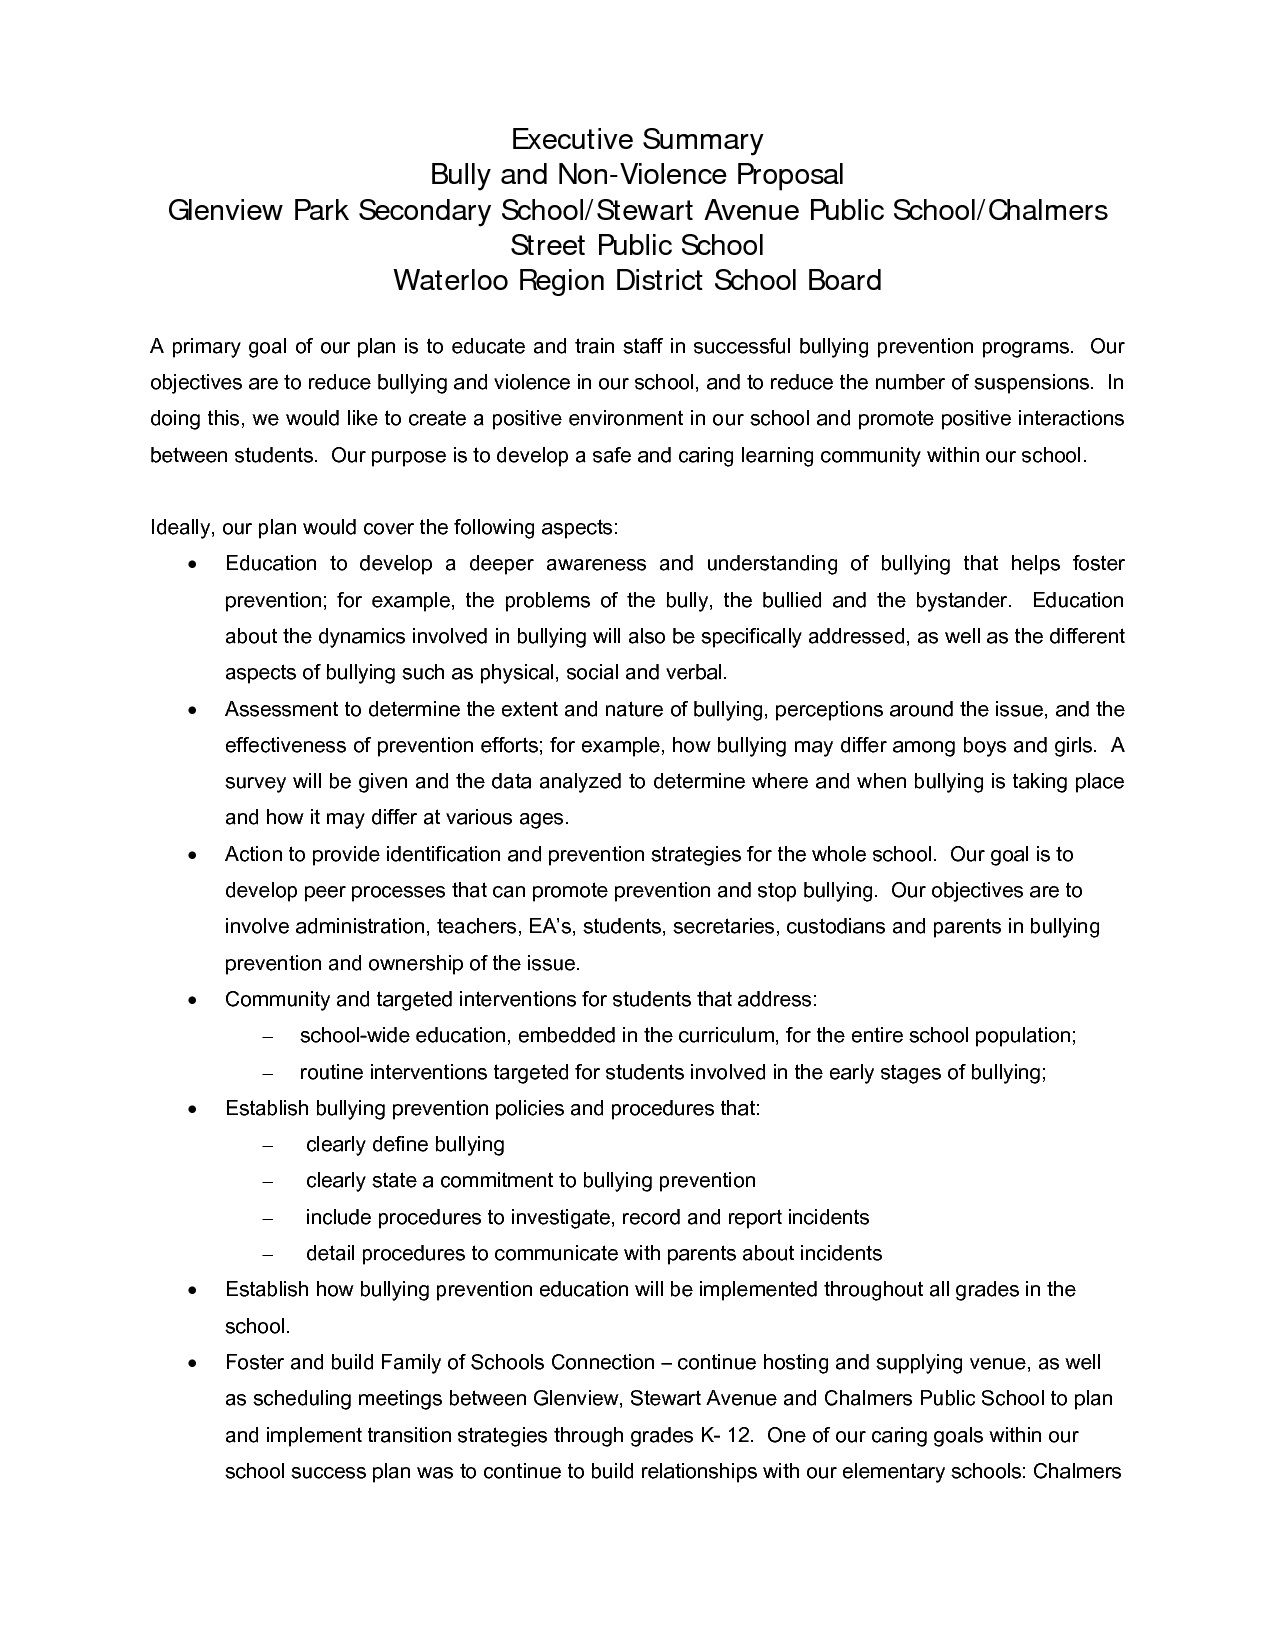 003 Marvelou Executive Summary Template For Proposal. Highest Clarity  Sample Proposal Pdf ProjectFull